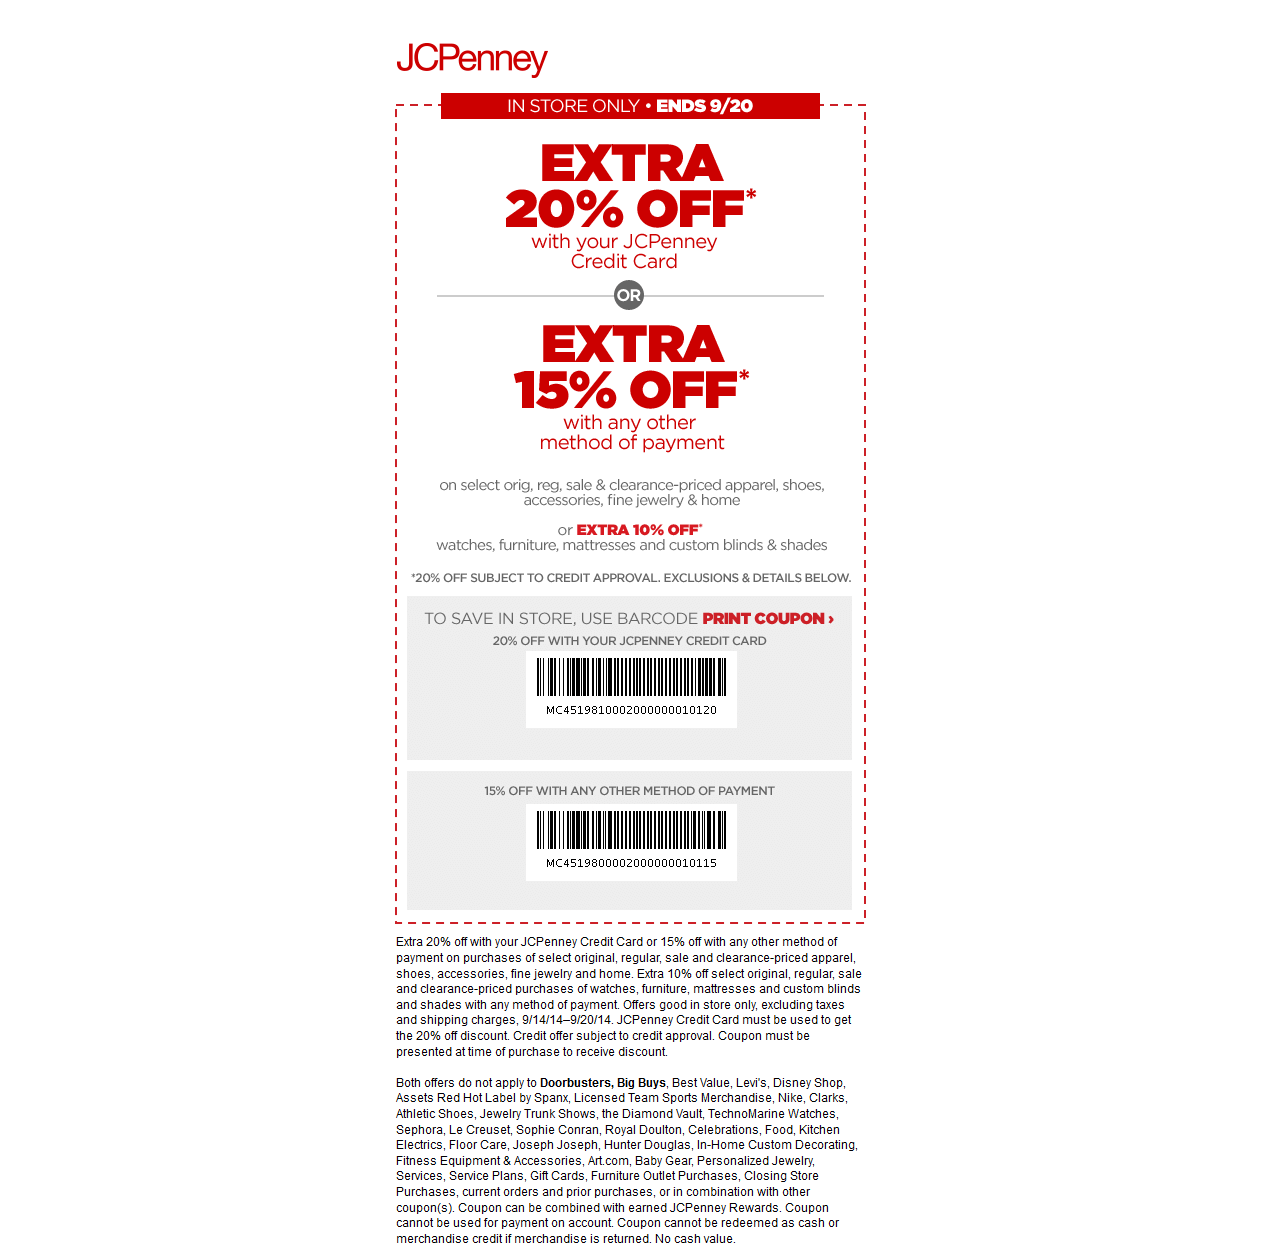 Printable - 20% off Entire Order - Must Use Store Card